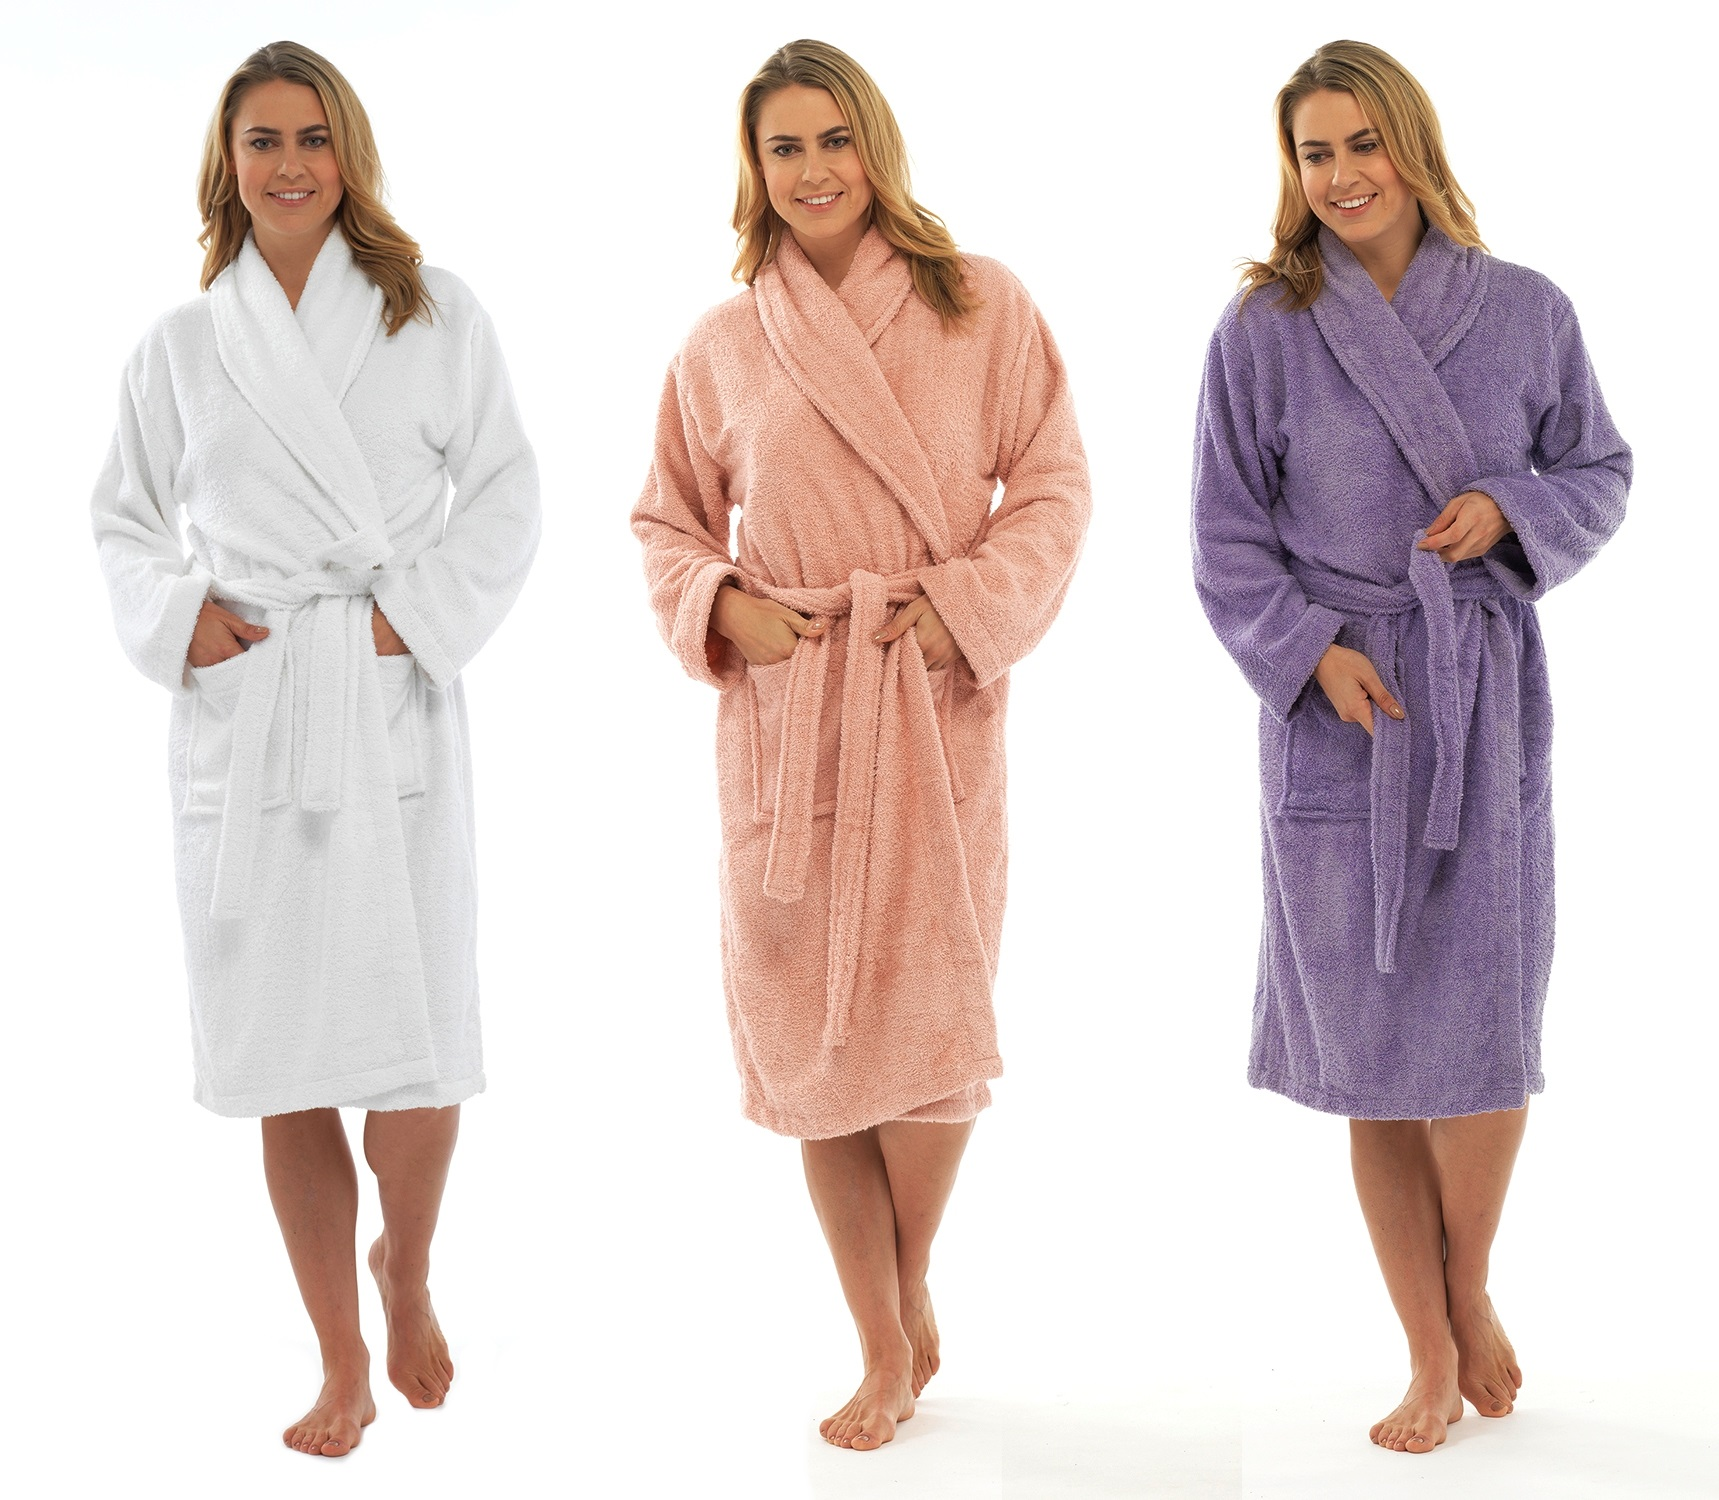 fcffe5e04b Womens Pure 100% Cotton Luxury Towelling Bath Robes Dressing Gowns ...